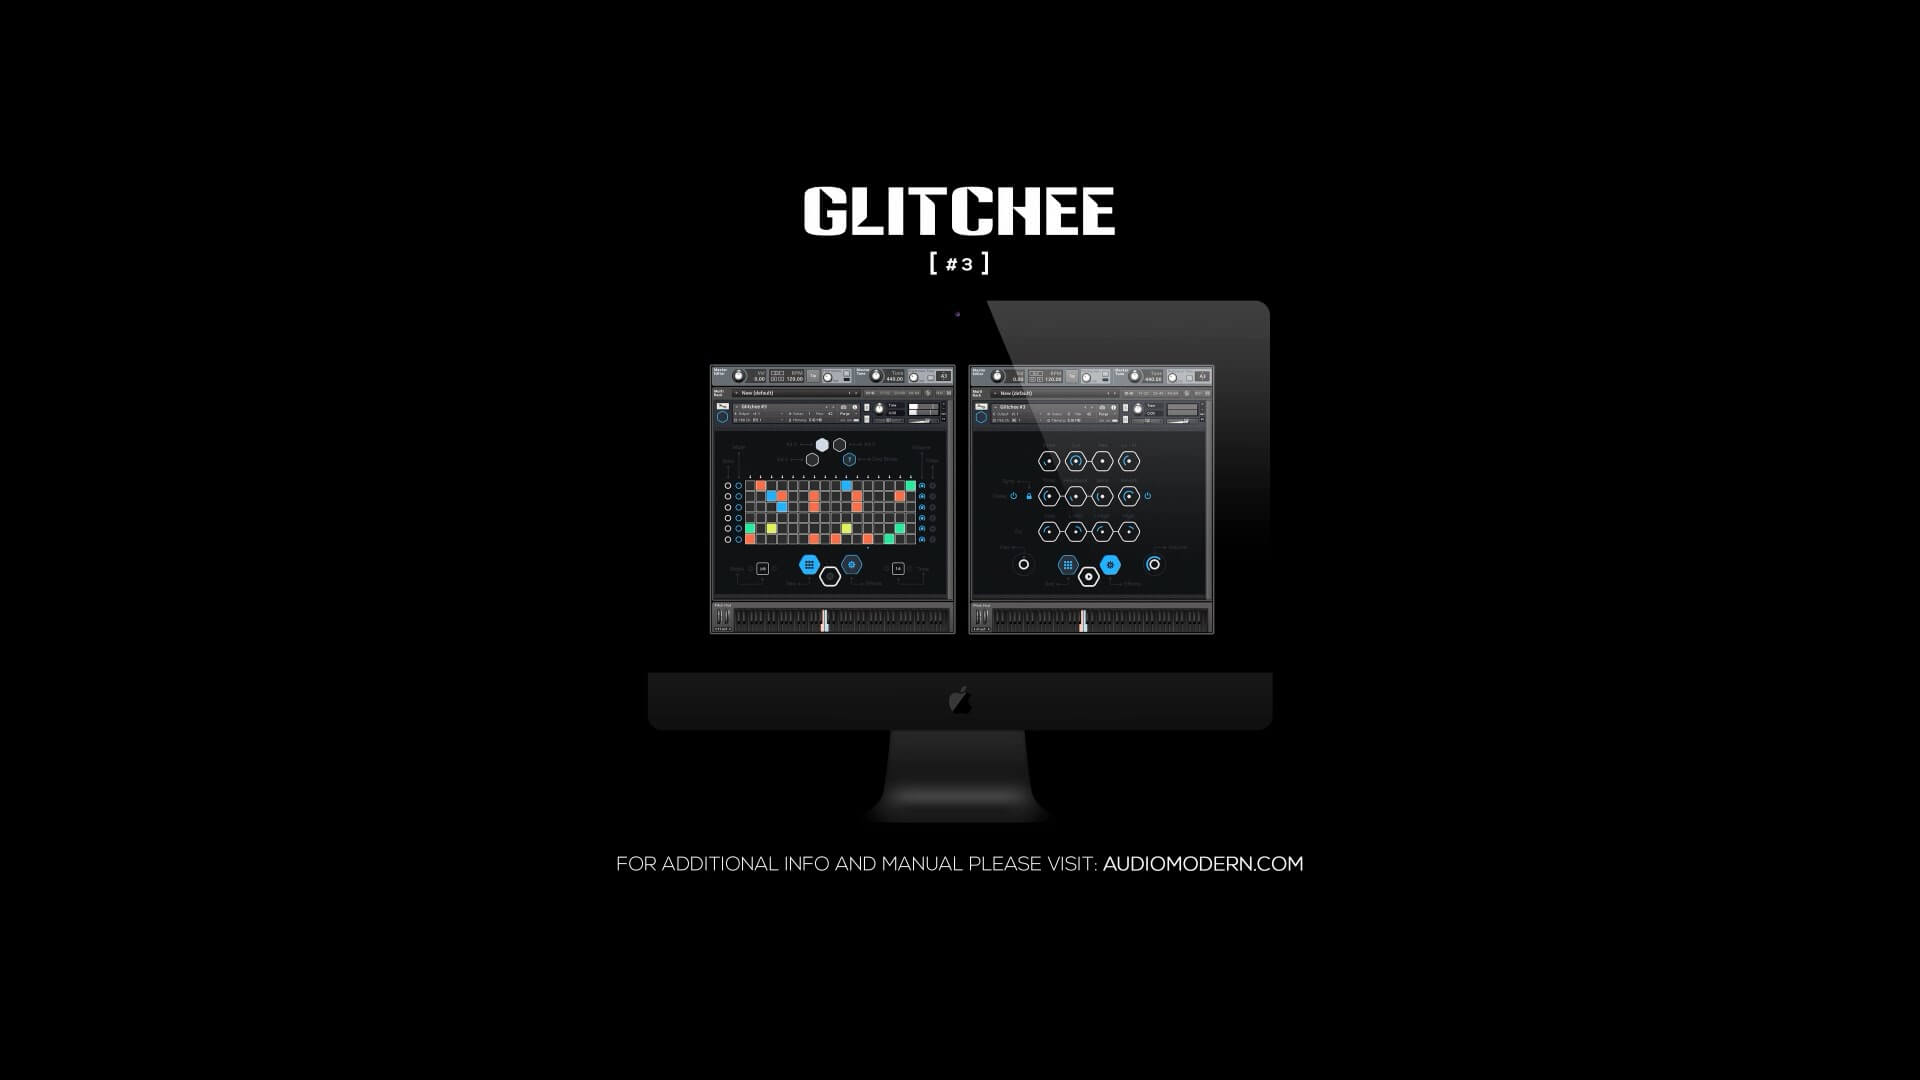 Video related to GLITCHEE 3